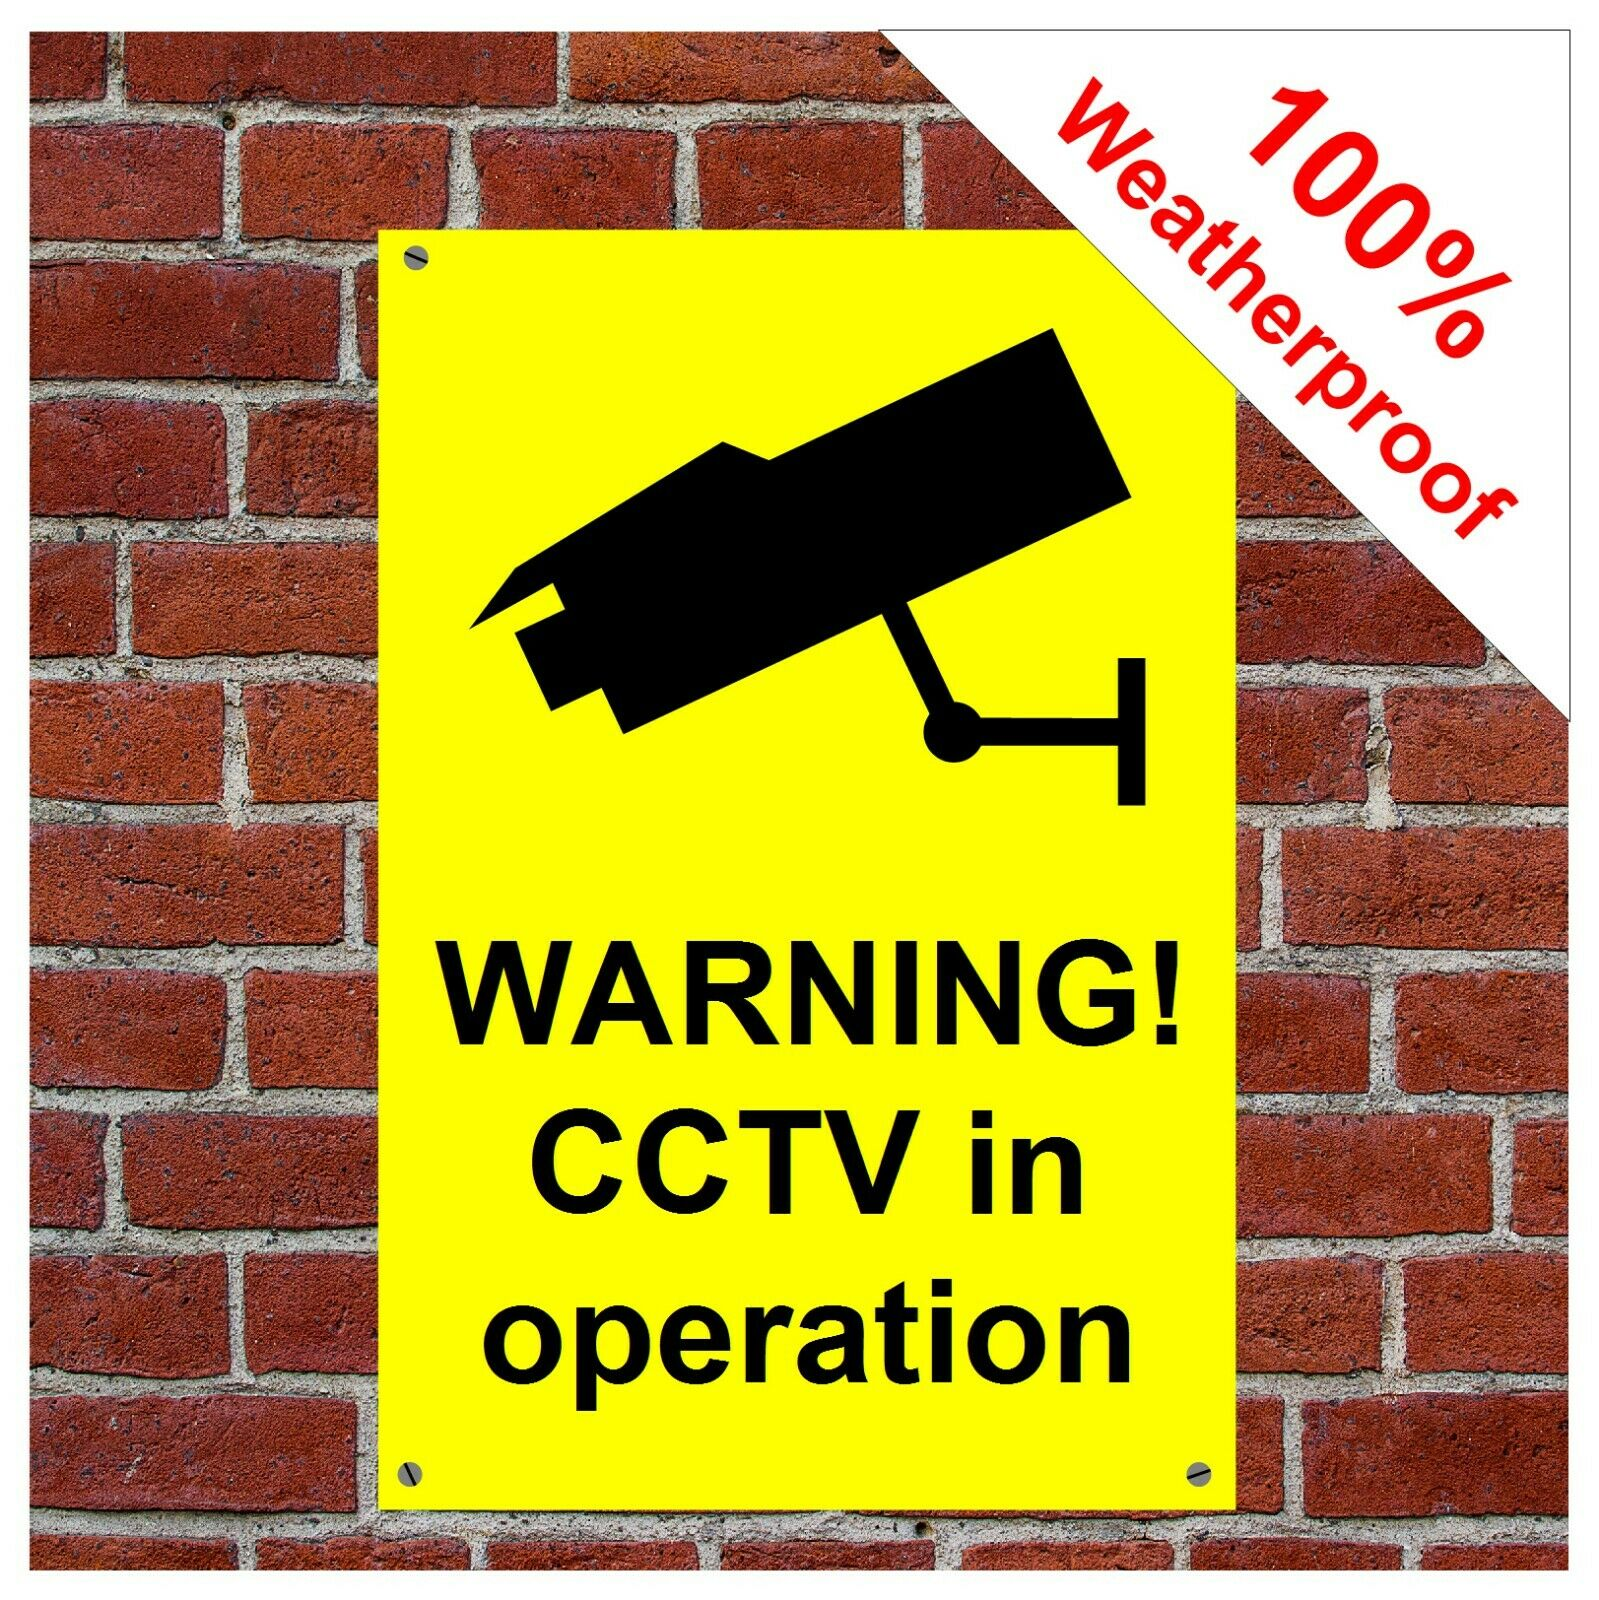 CCTV in operation sign 9014